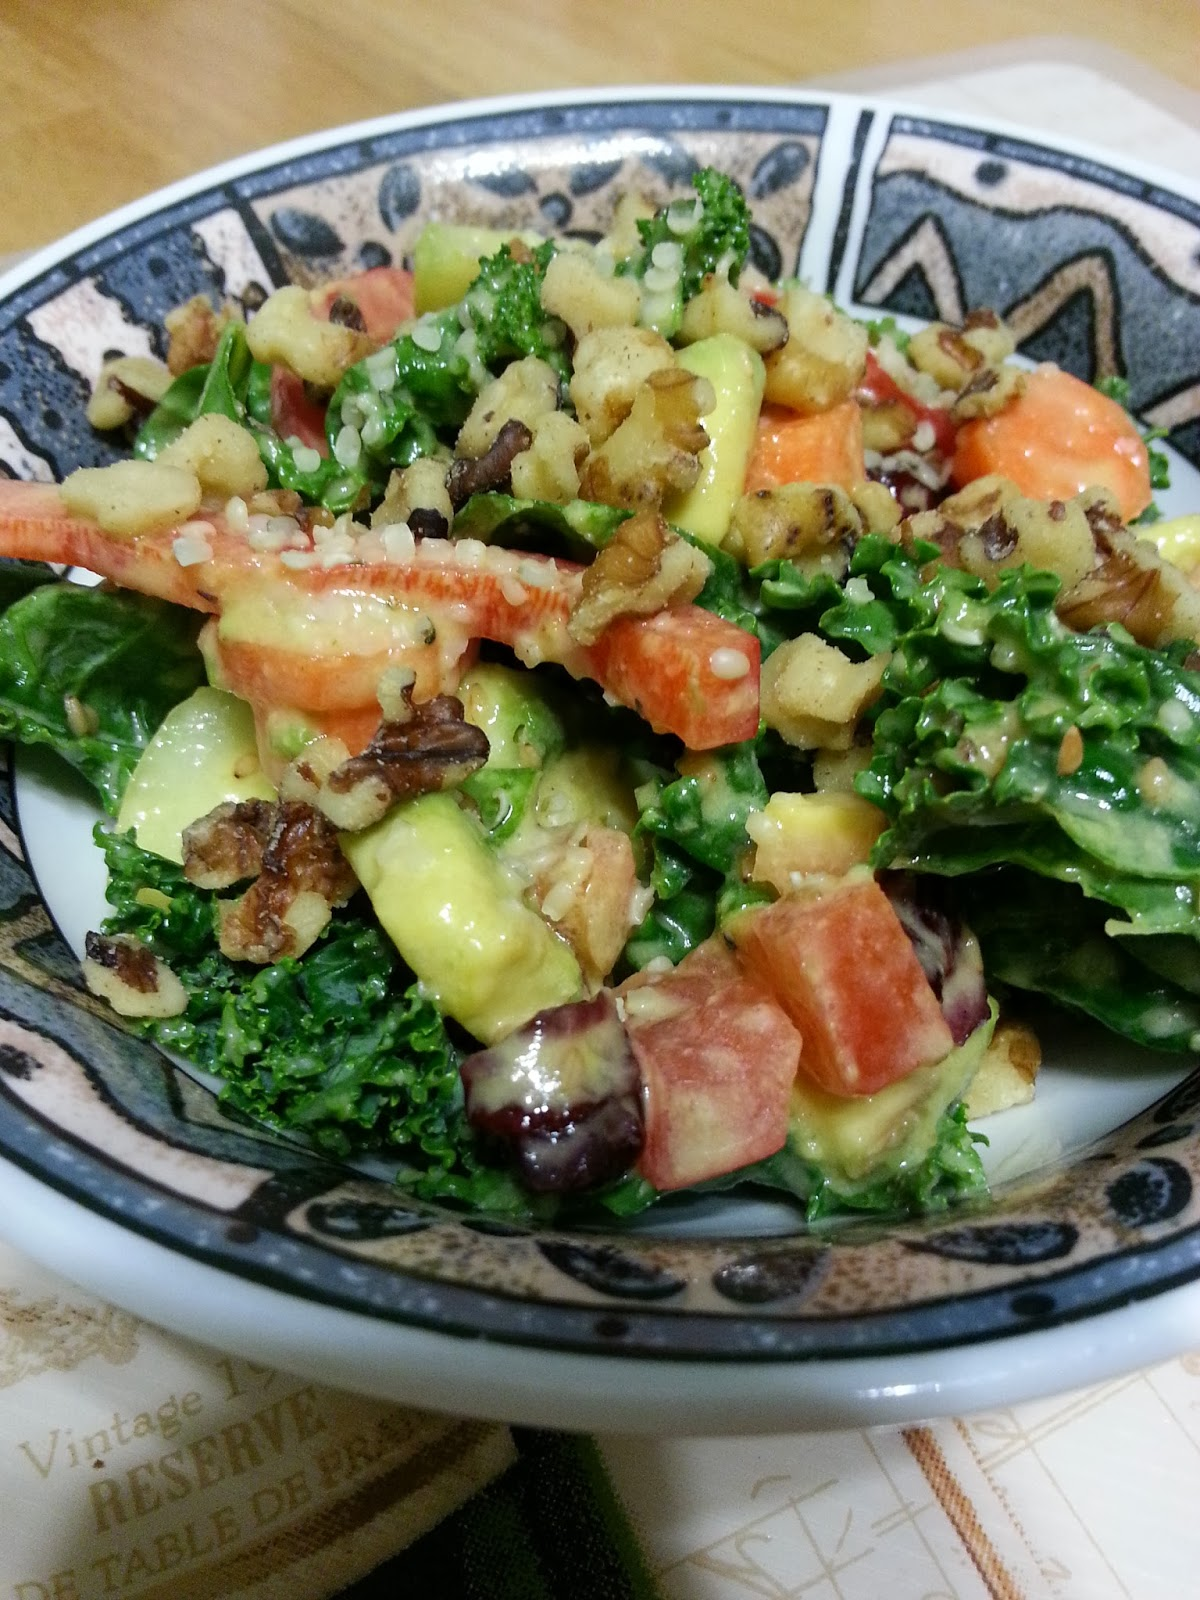 ... Week 4 Whip Up a Packed-With-Vitamins Salad - Weekend Glow Kale Salad